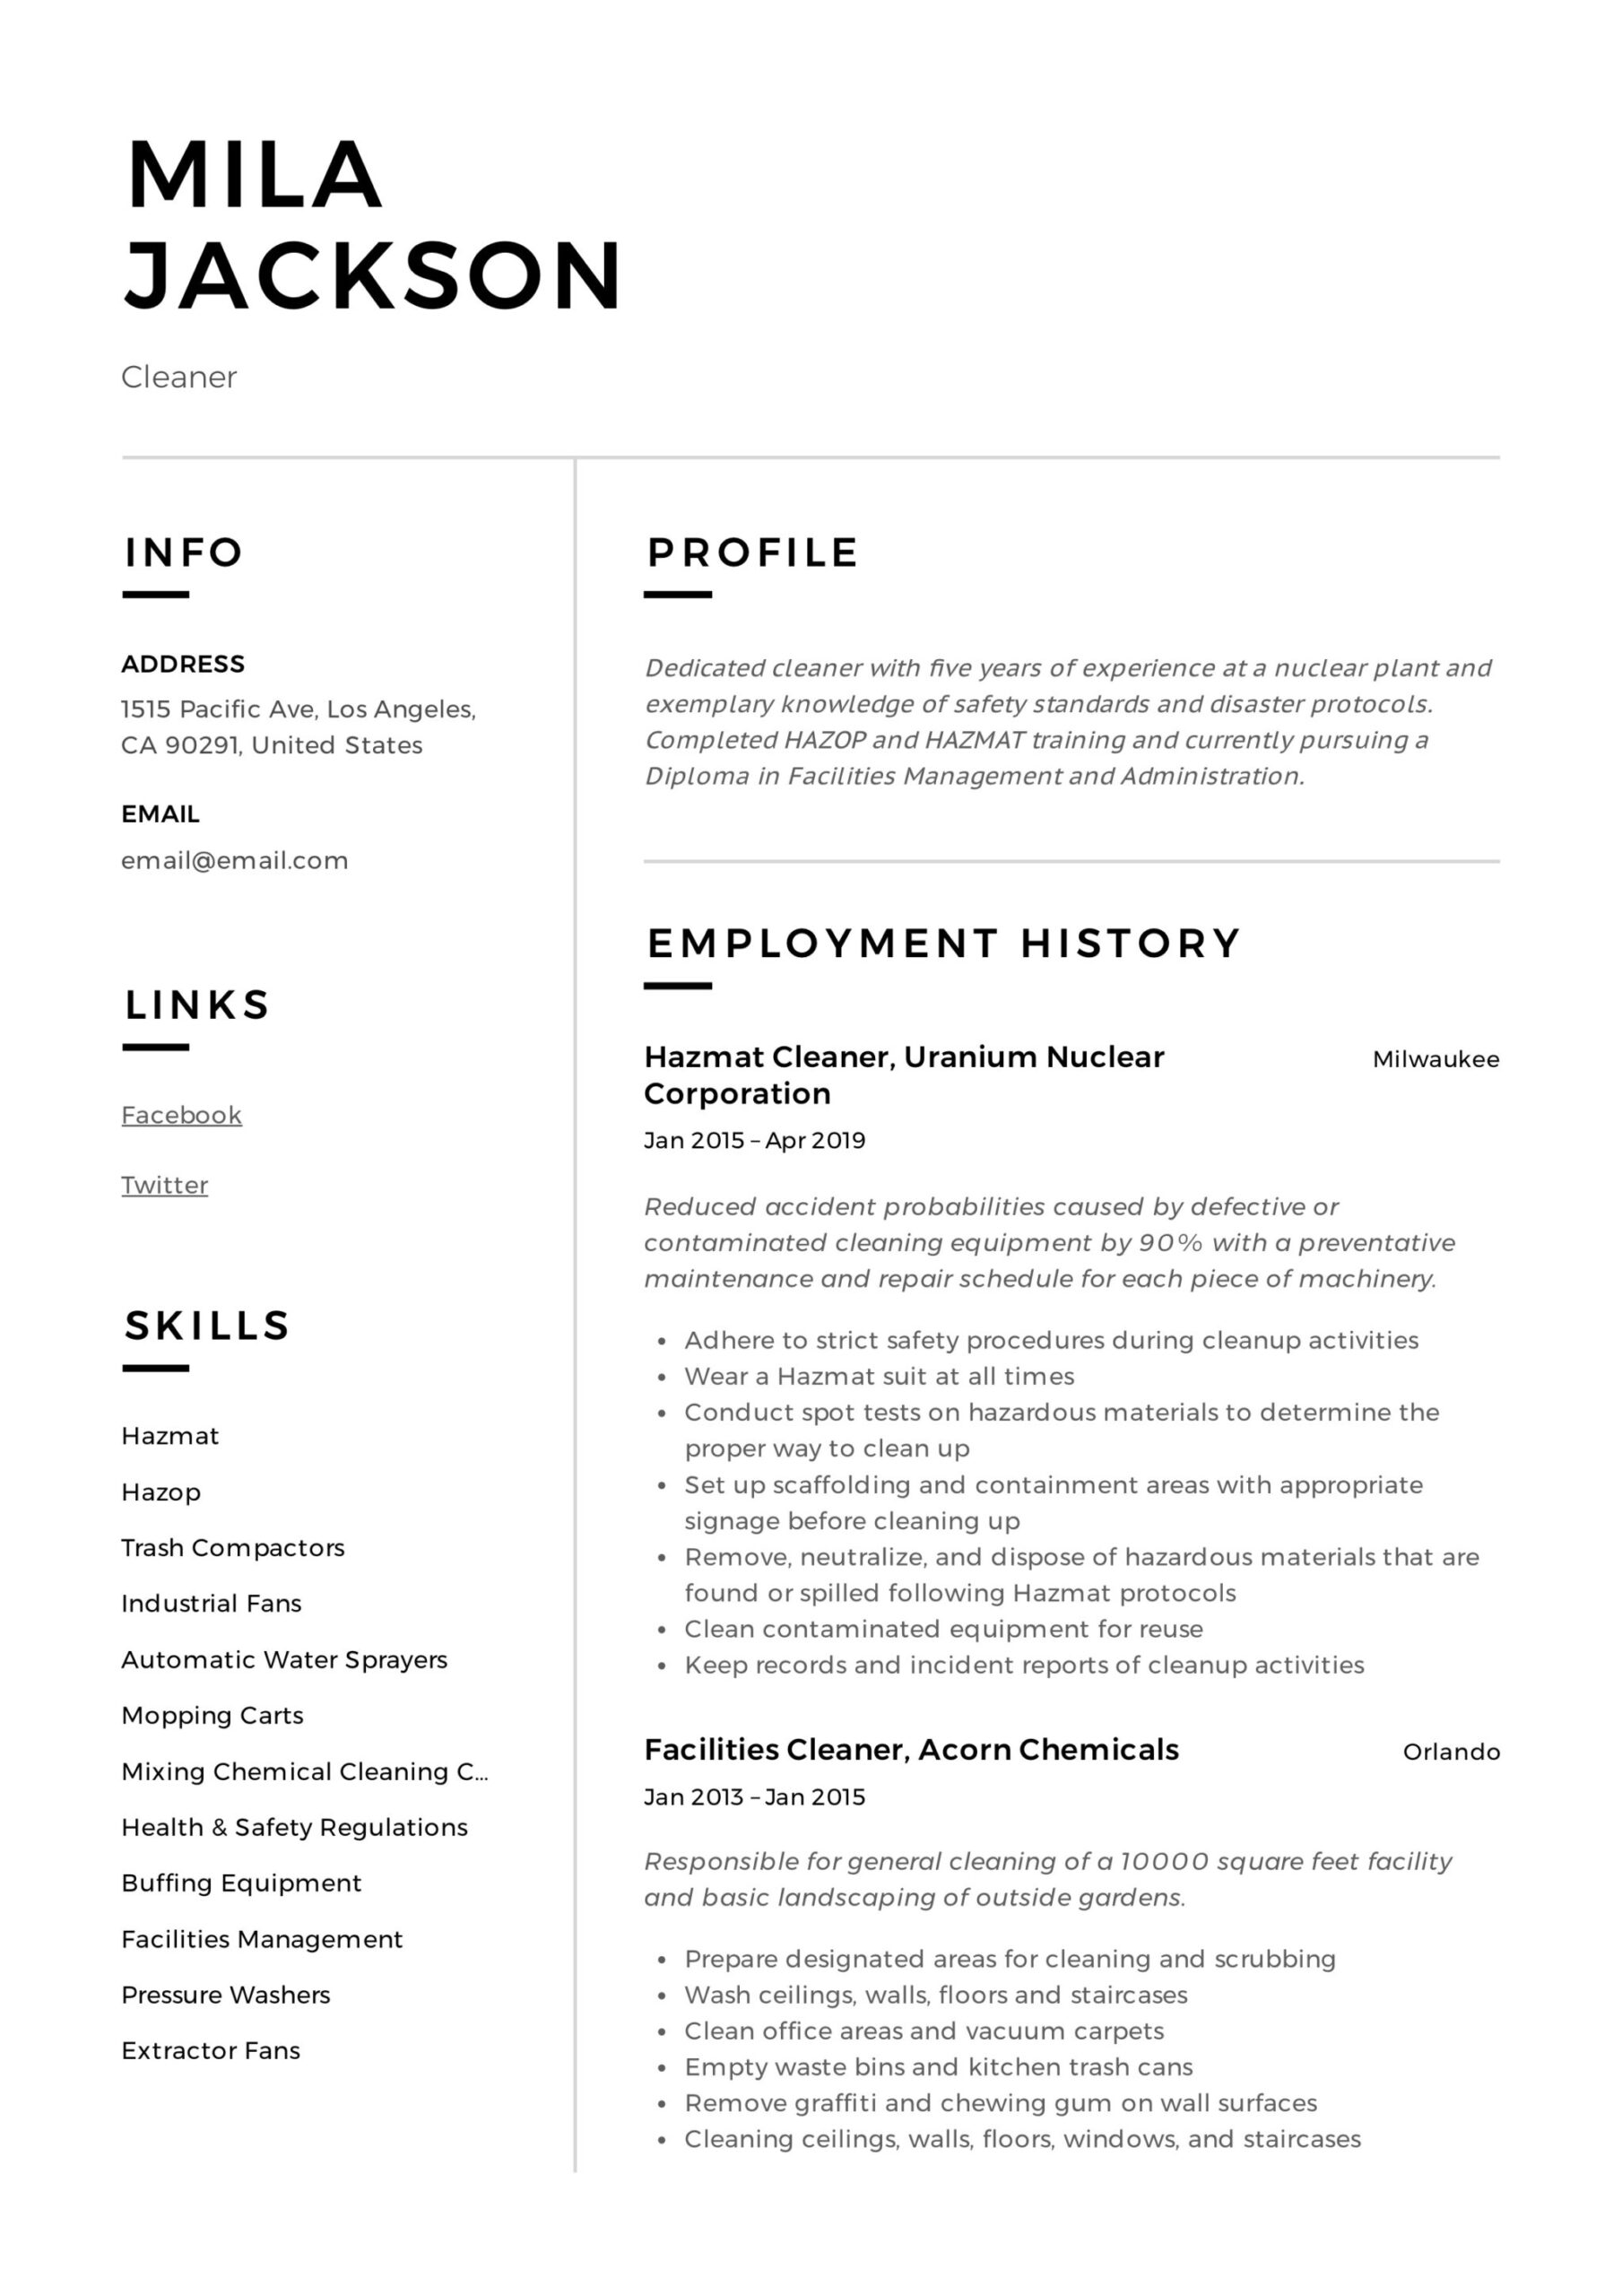 cleaner resume writing guide templates pdf hospital cleaning job sample mila healthcare Resume Hospital Cleaning Job Resume Sample Pdf